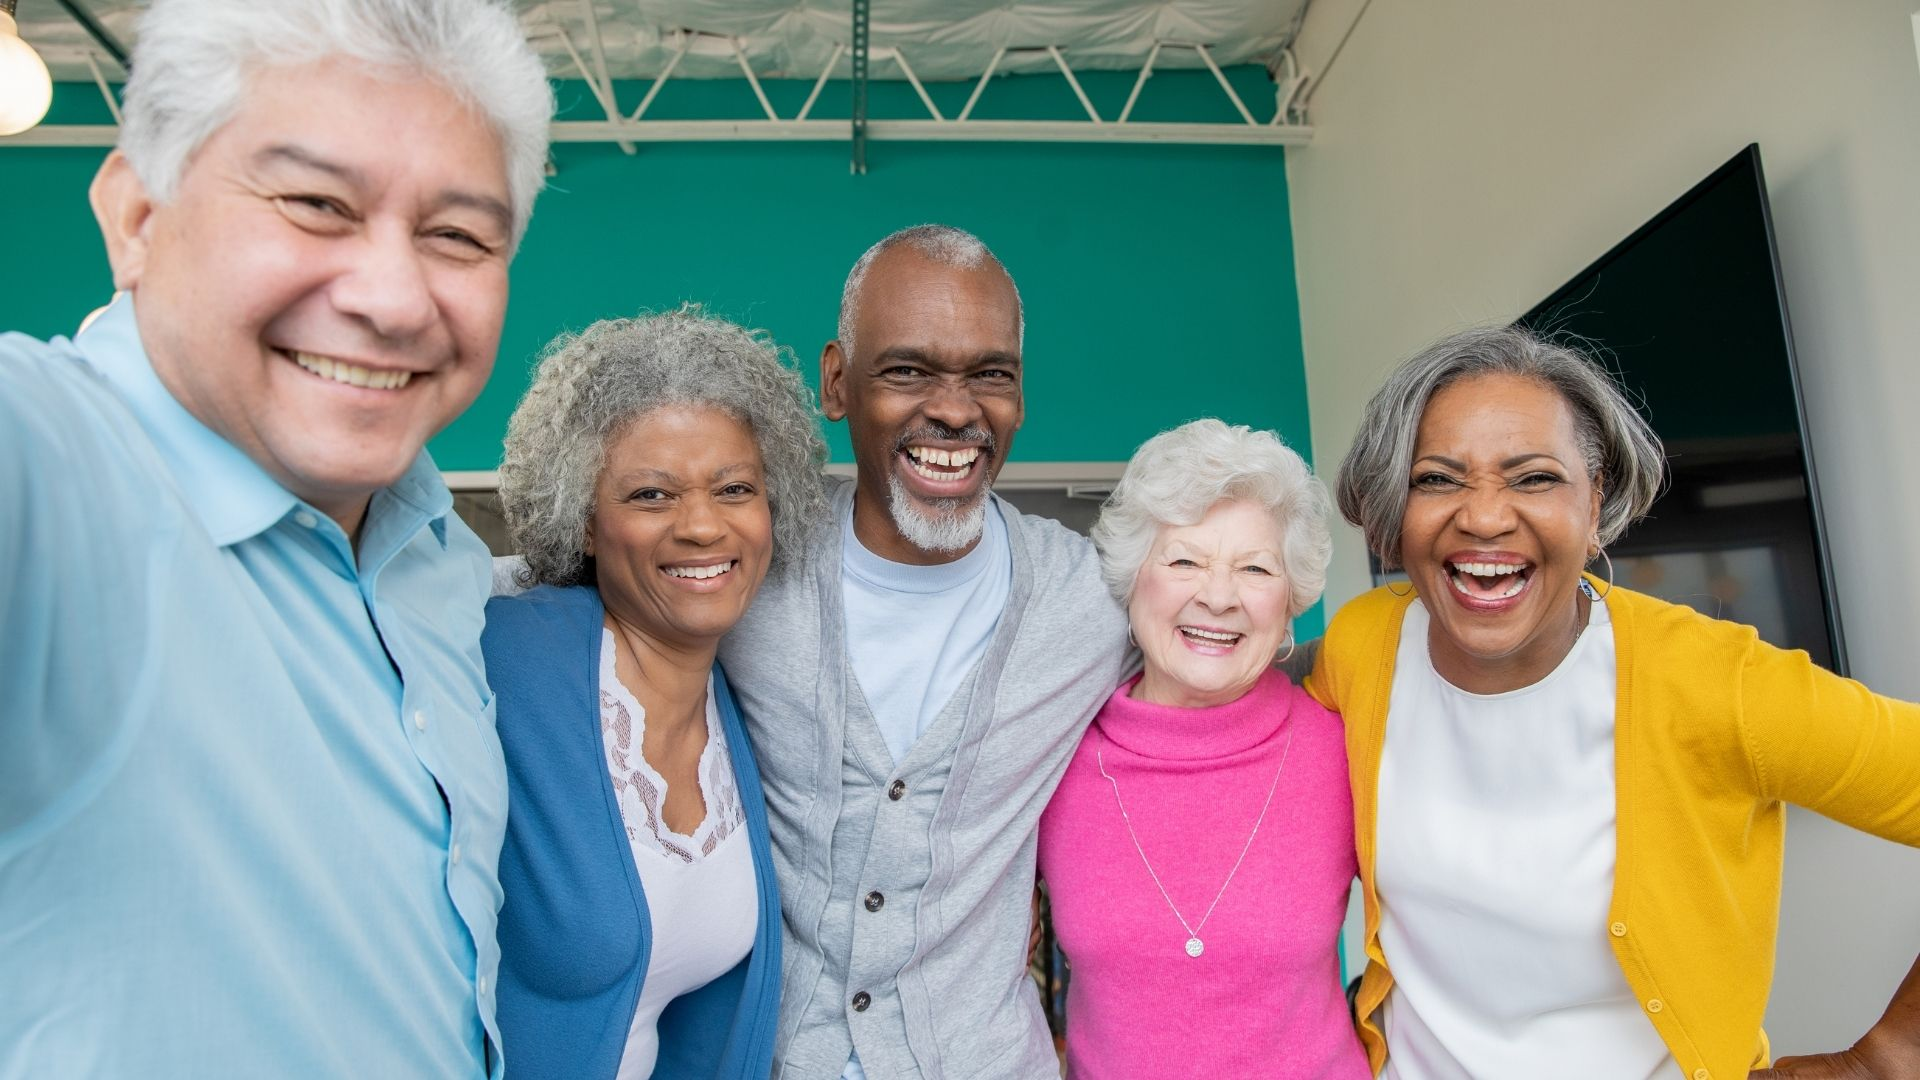 Promoting Healthy Aging group of seniors